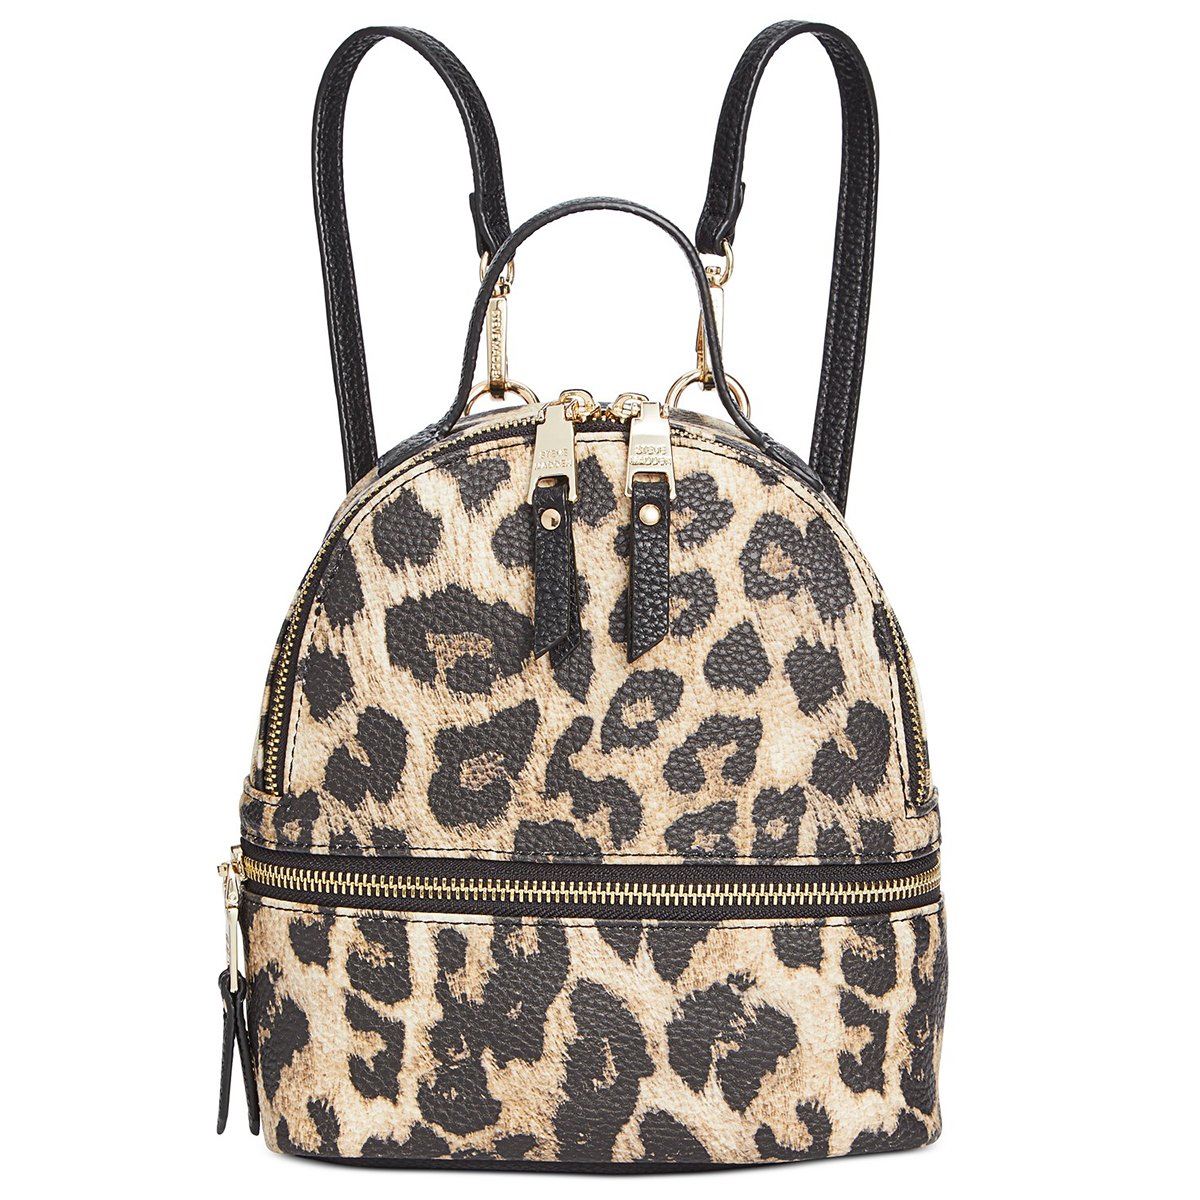 This Steve Madden Backpack Converts Into a Cute Crossbody (Now Nearly 50% Off!)